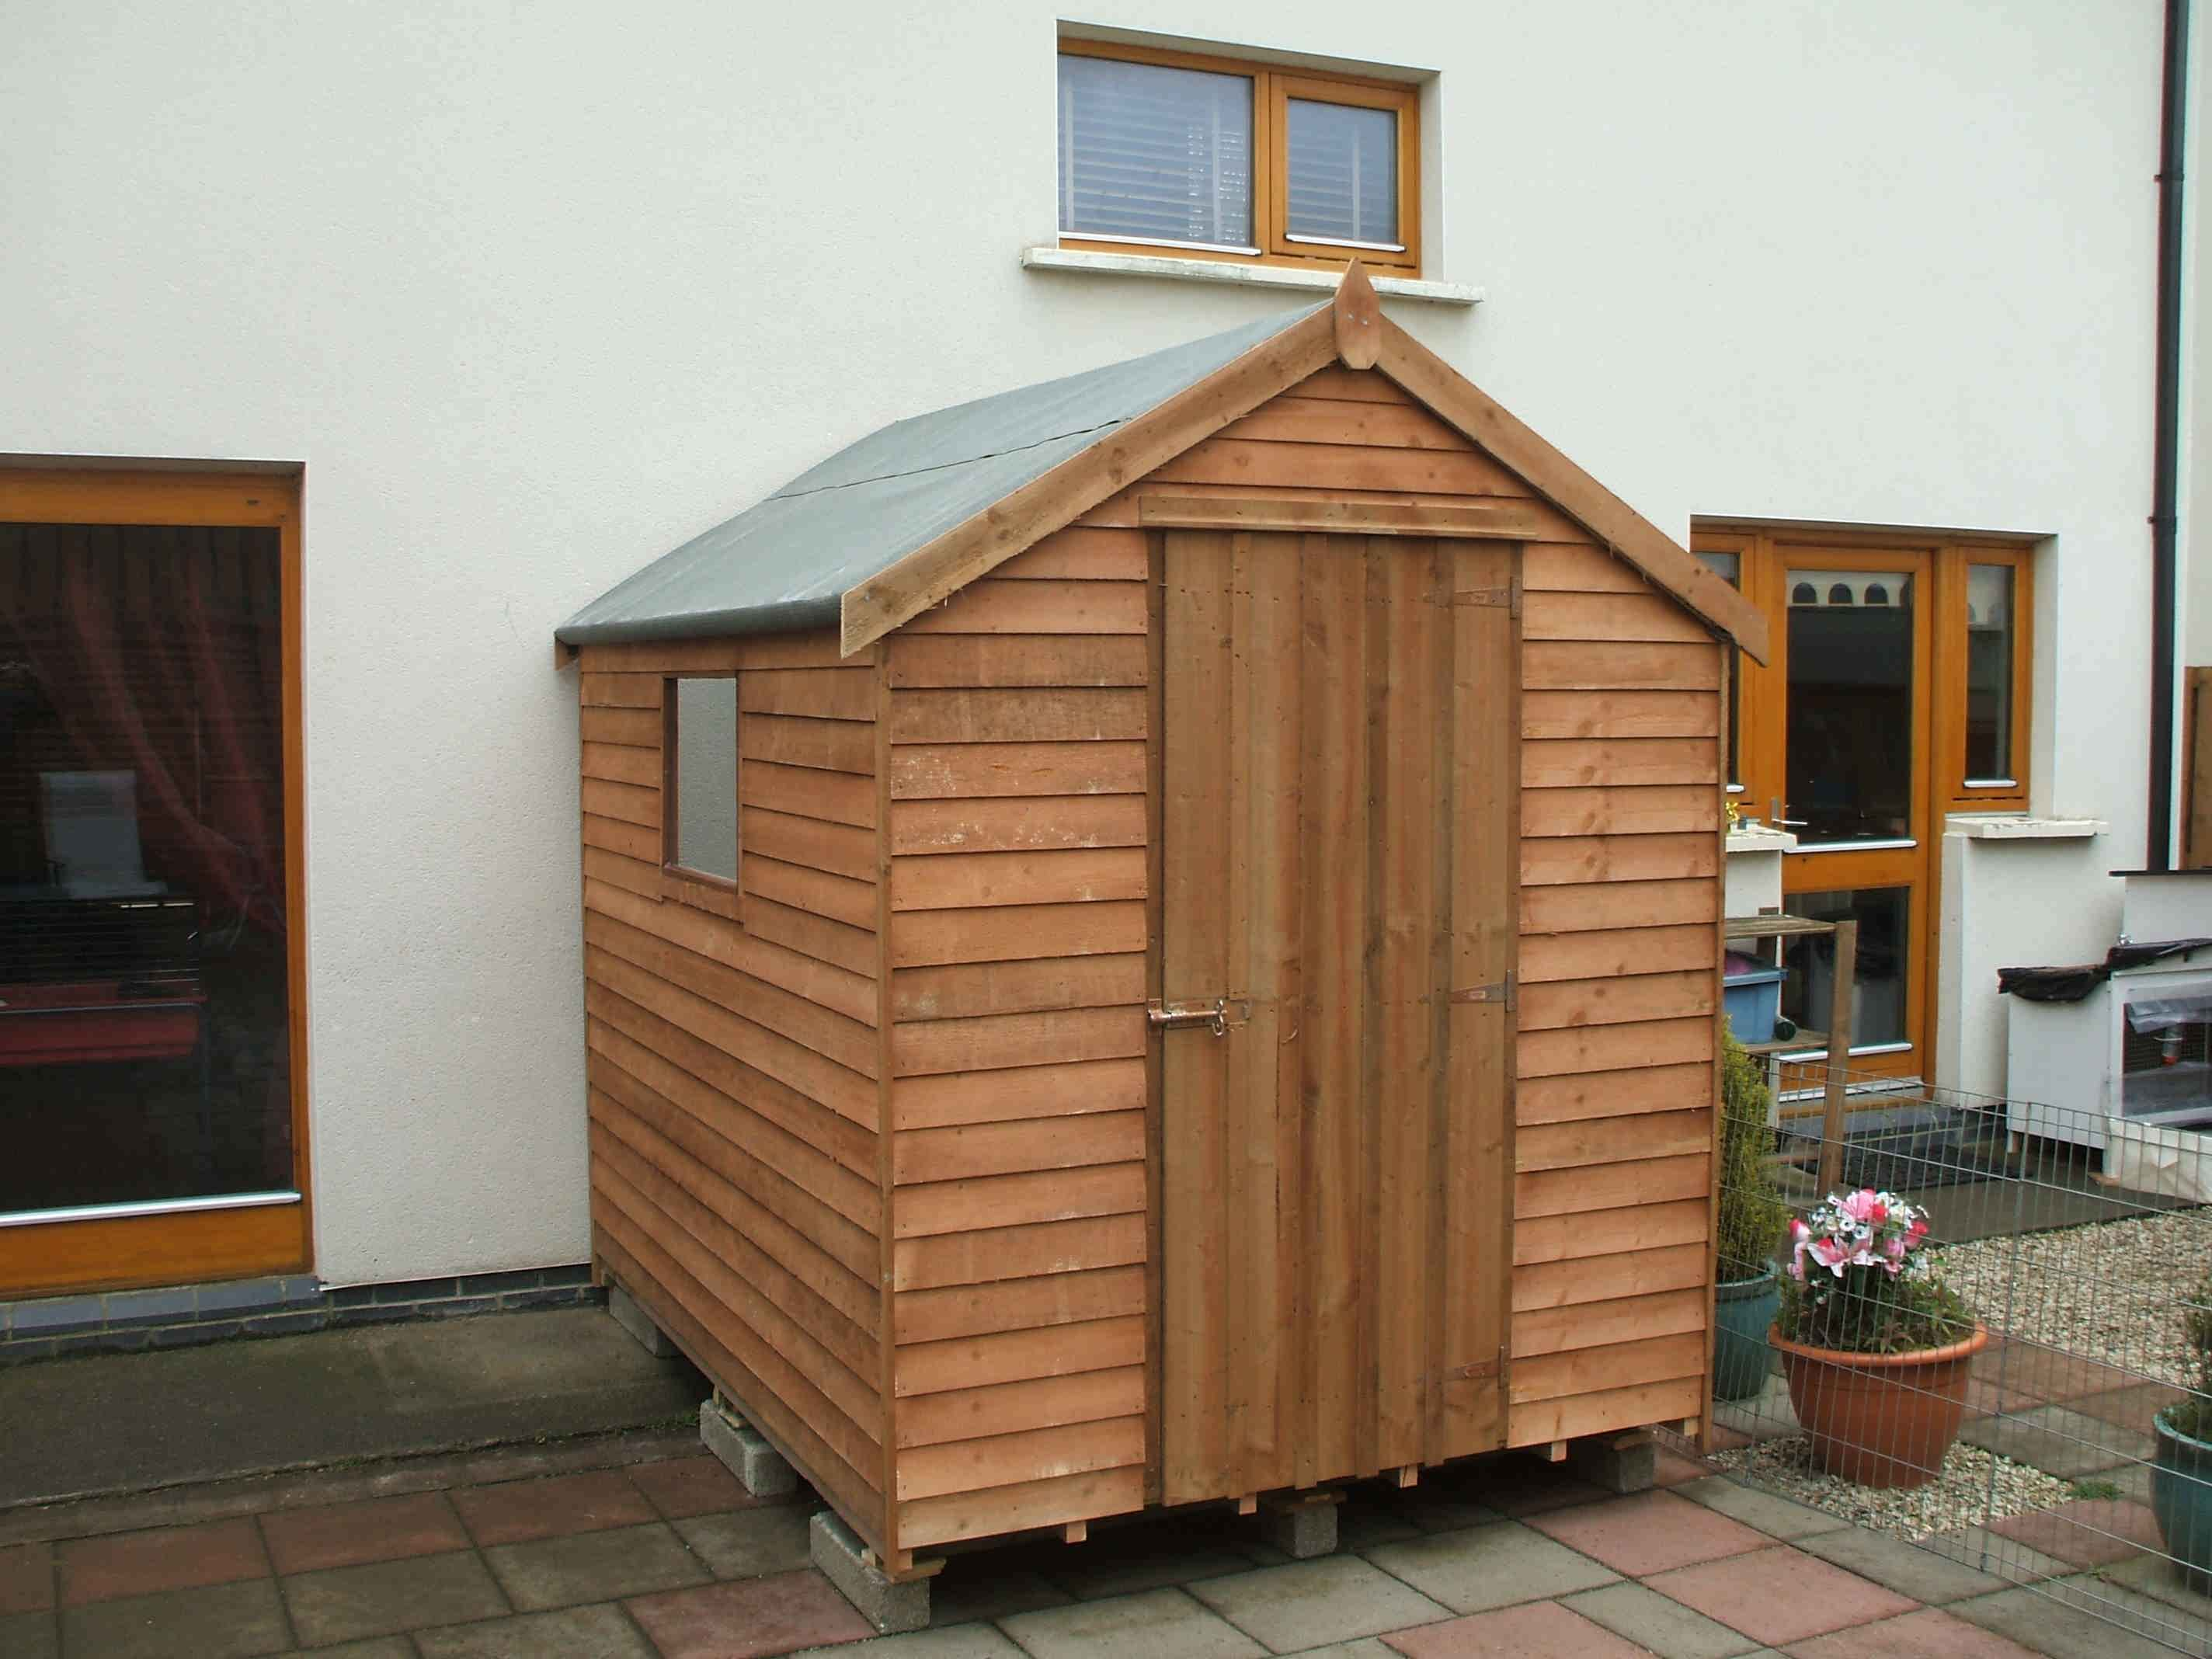 Garden Sheds Gorey garden sheds gorey - house decoration design ideas is the new way